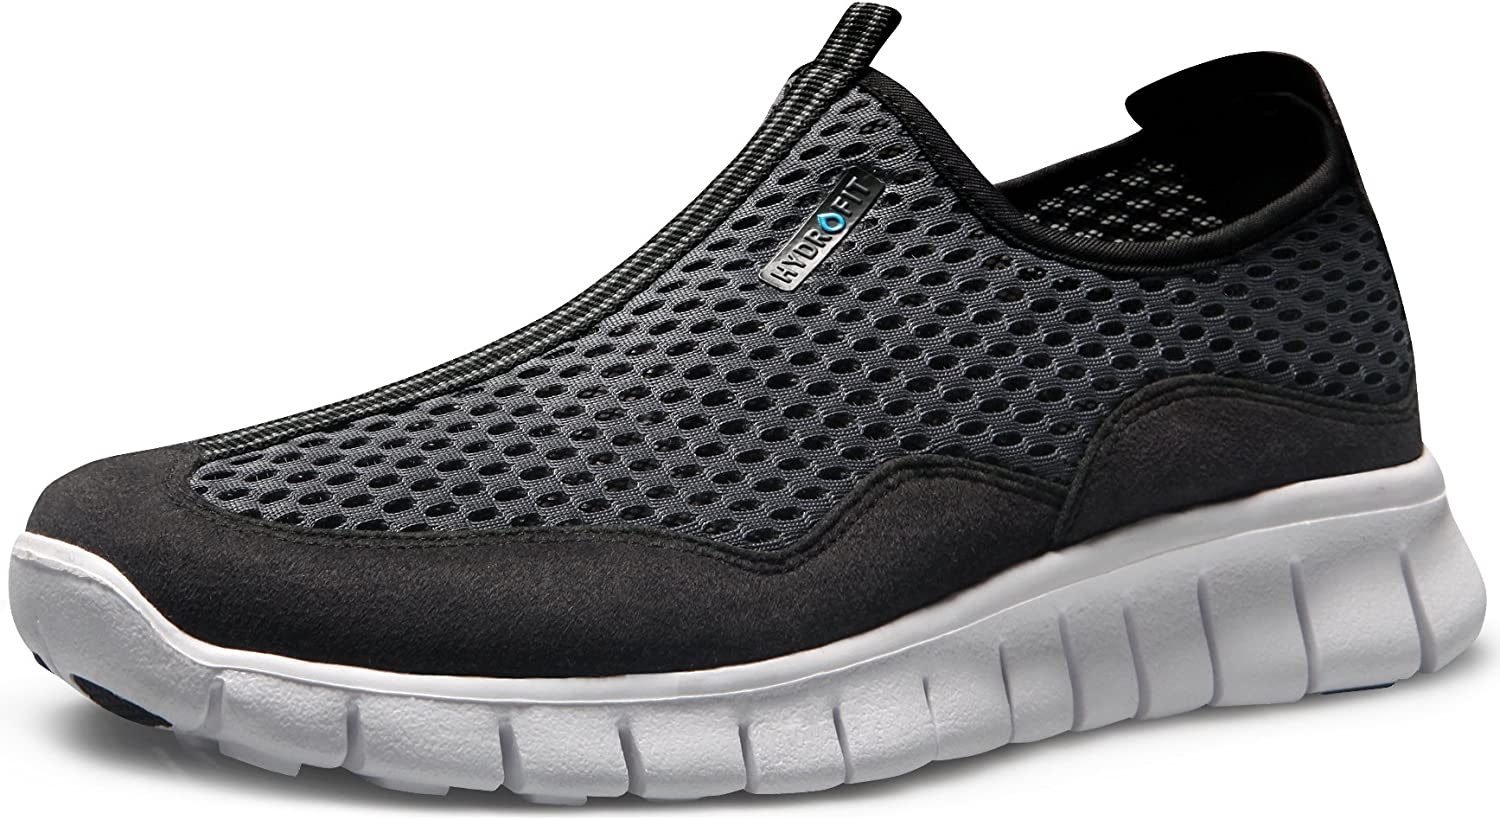 TSLA Men's Loafers Slip-On Mesh Breathable Shoes Lightweight Gifts Max 82% OFF